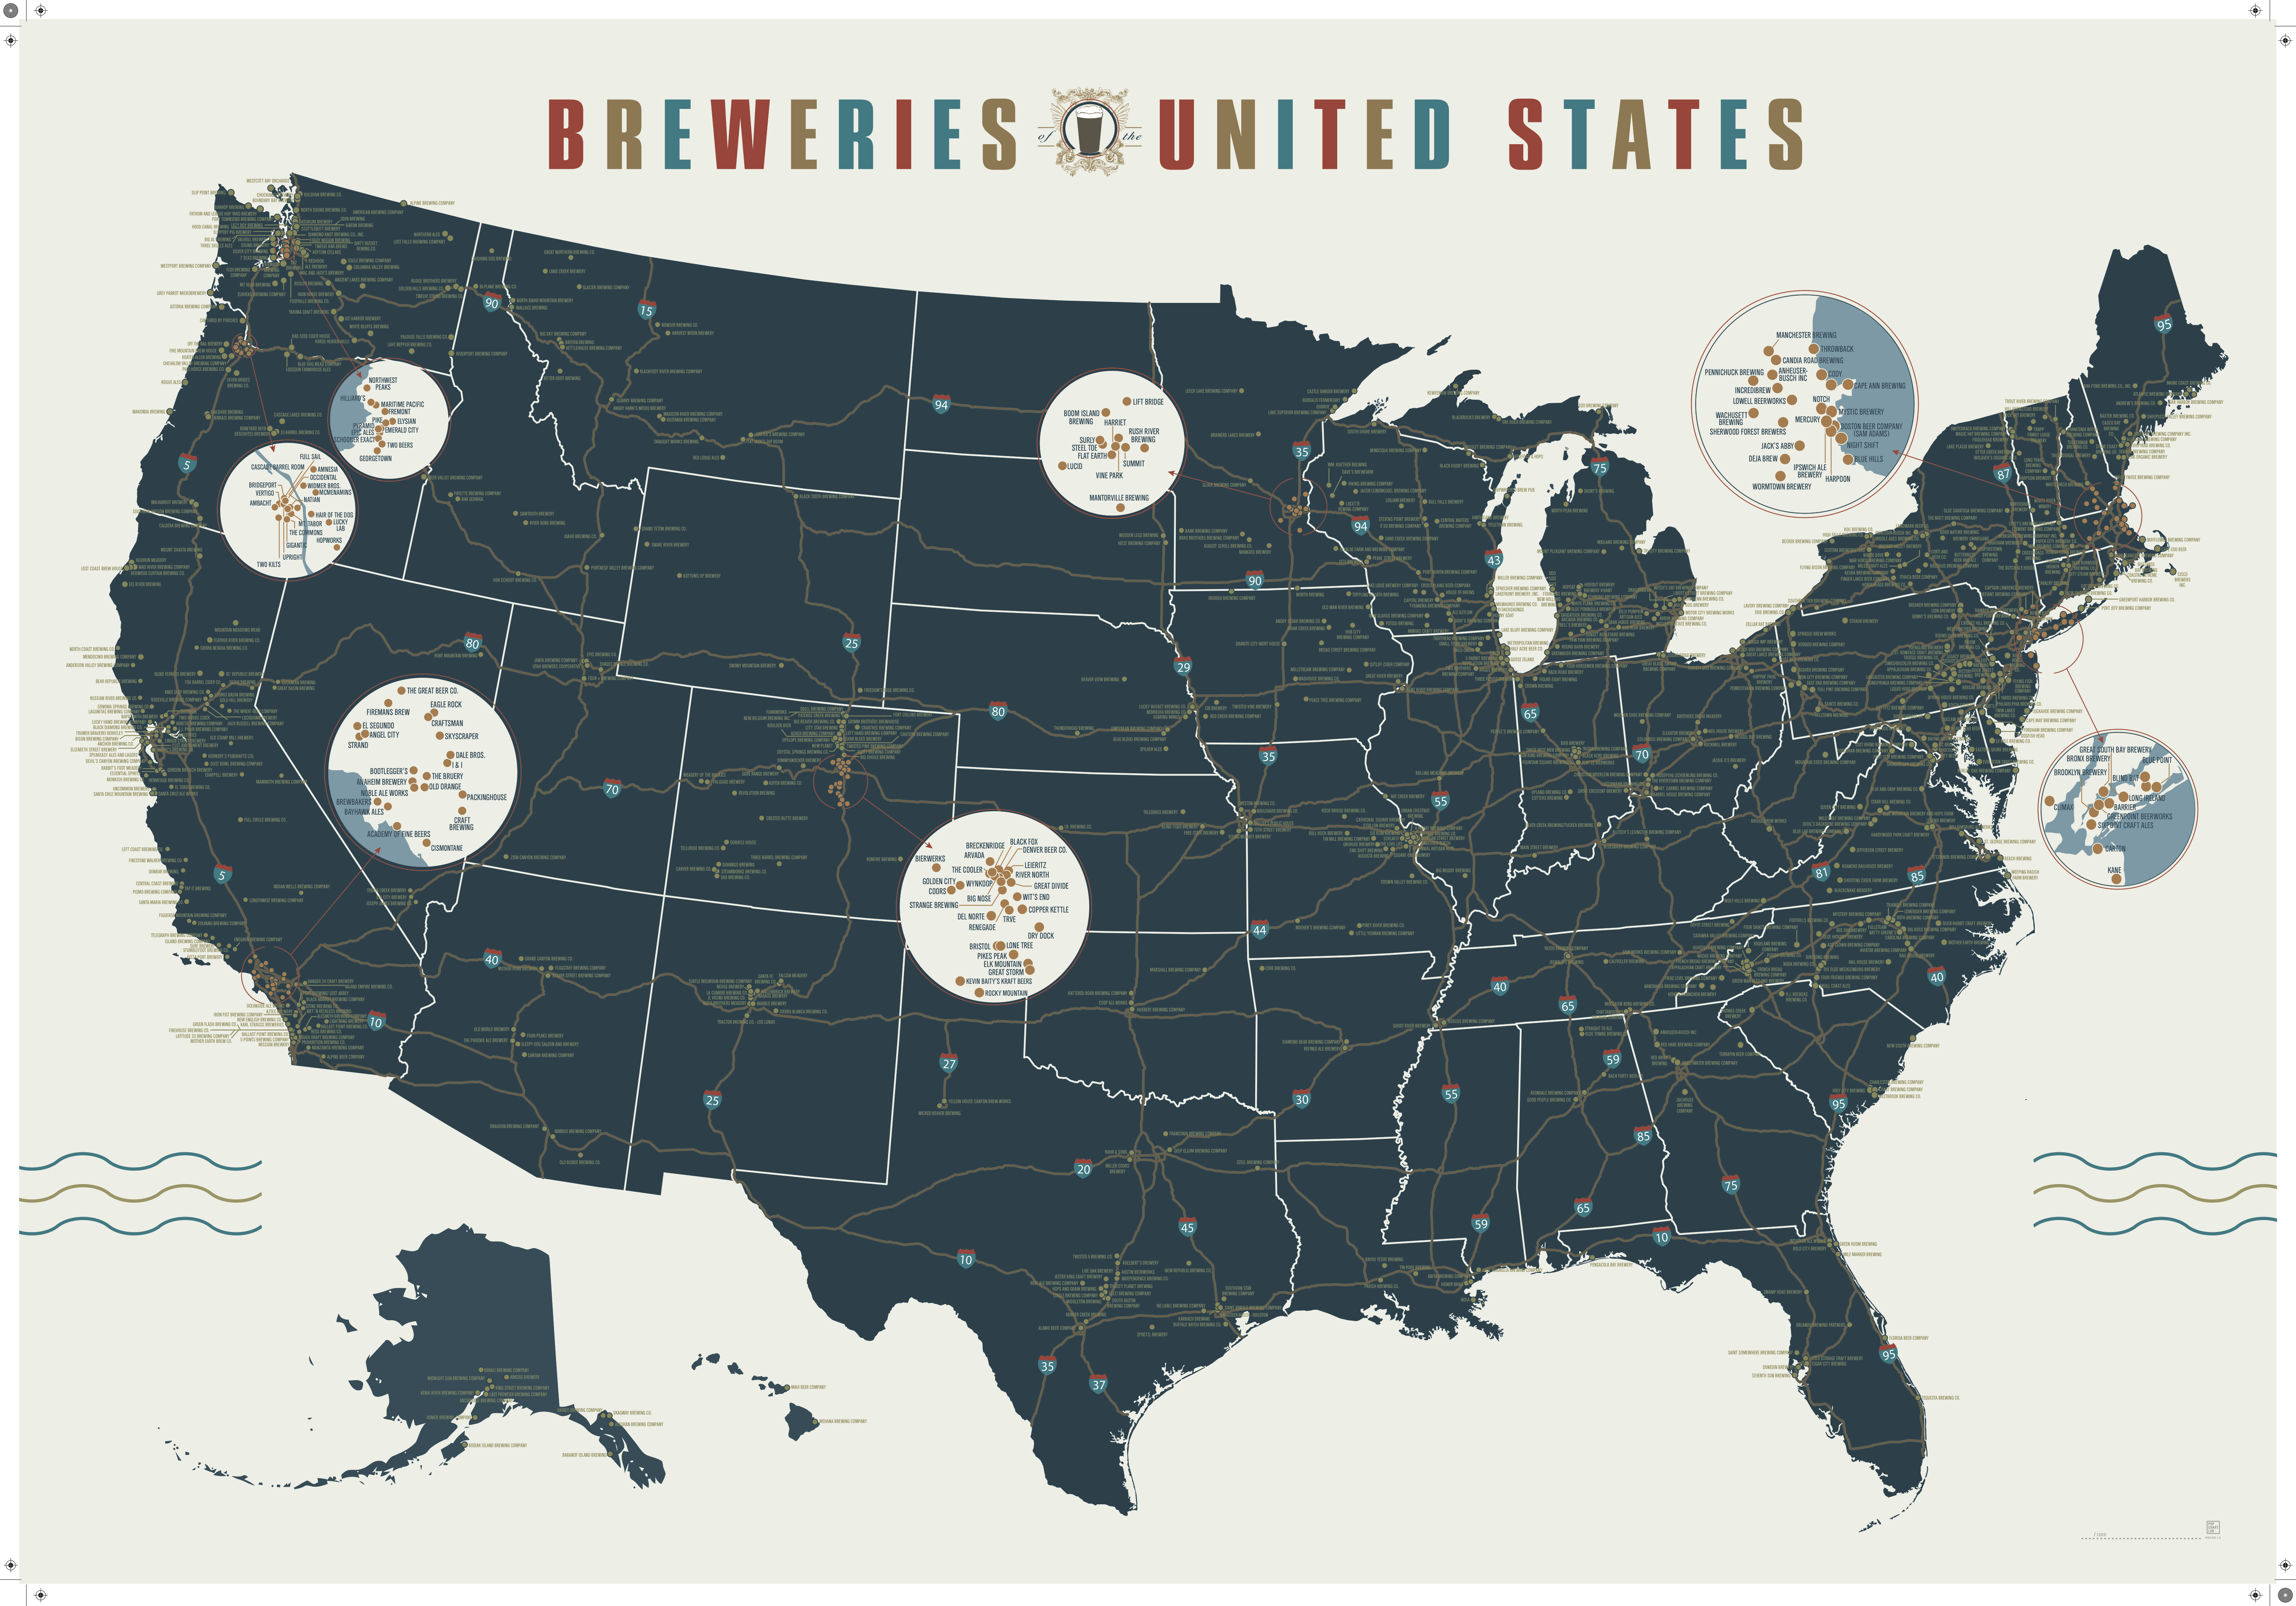 Beer Lovers How To Get A FREE Breweries Of The United States Map - Beer Map Of The Us